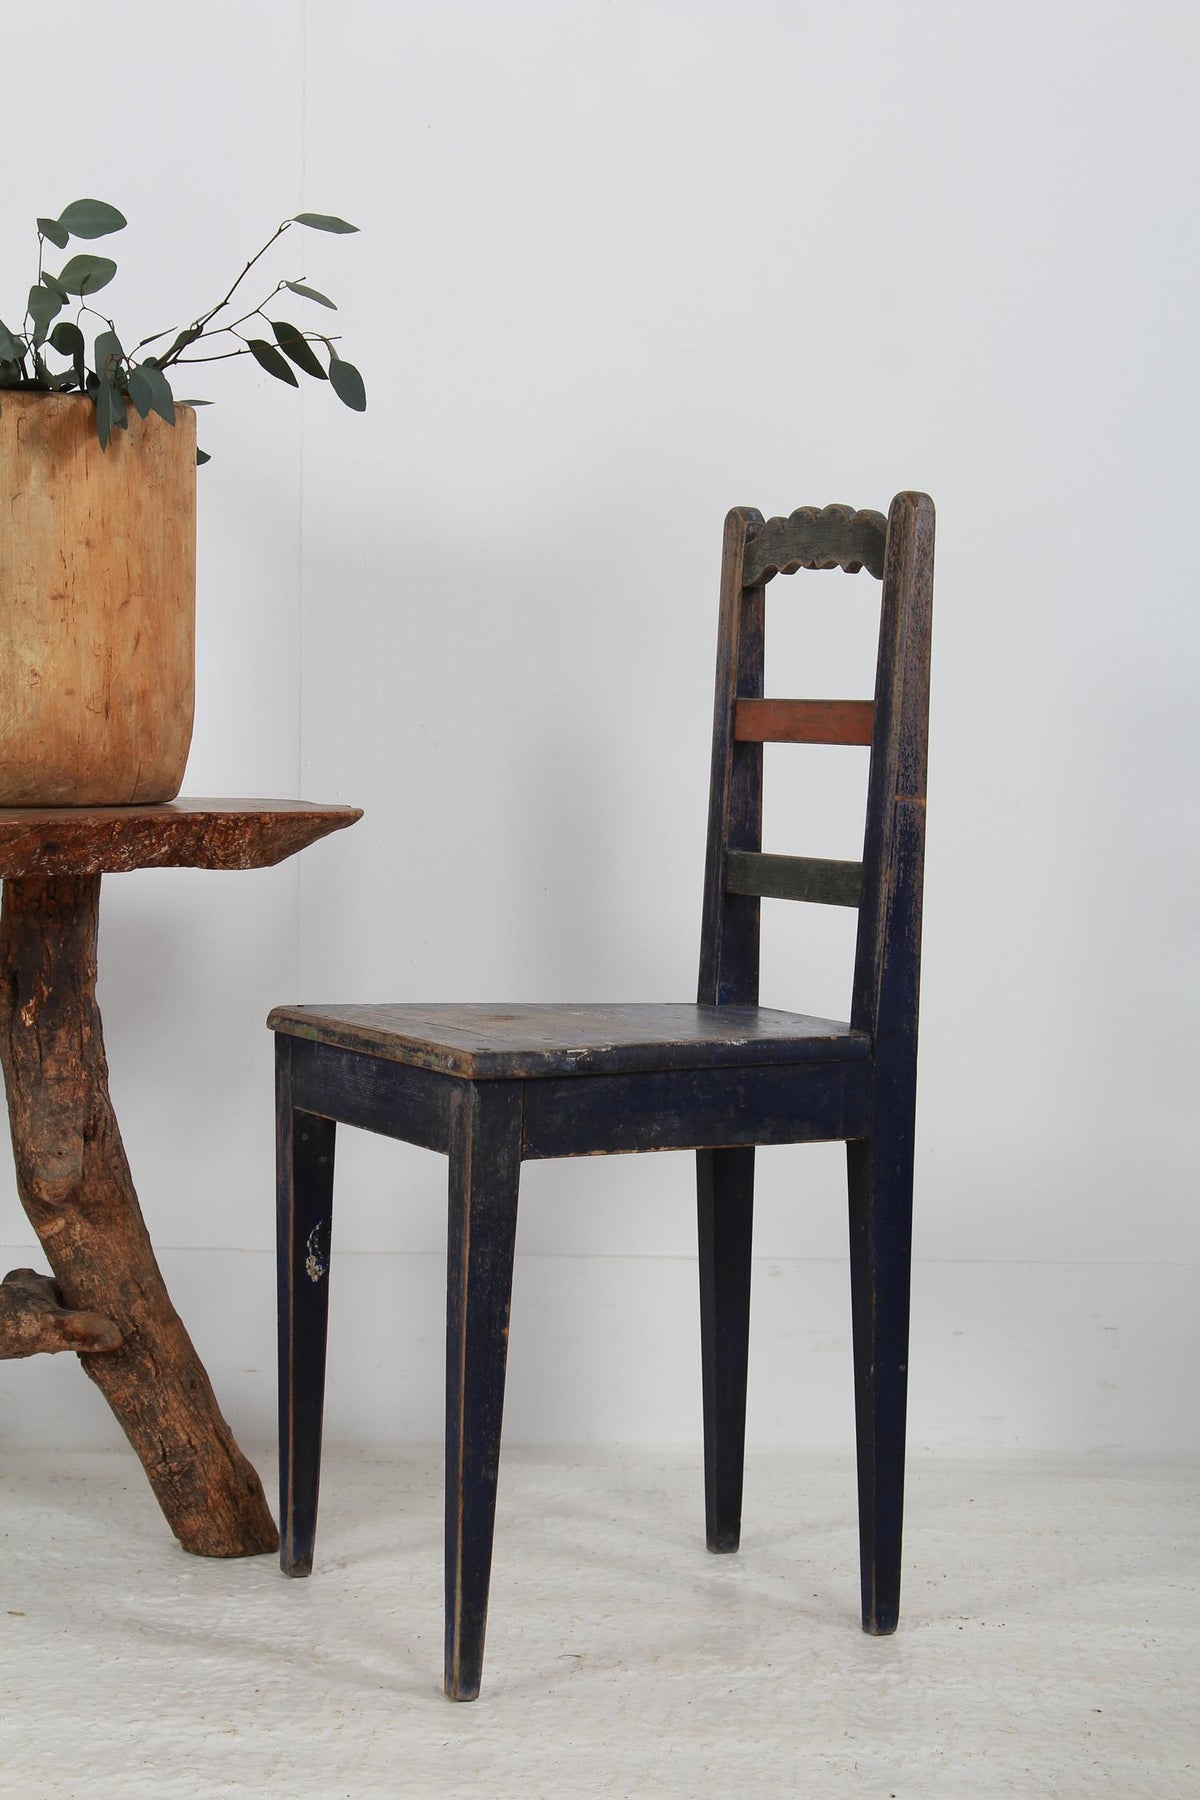 CHARMING SWEDISH COUNTRY CHAIR IN ORIGINAL BLUE PAINT